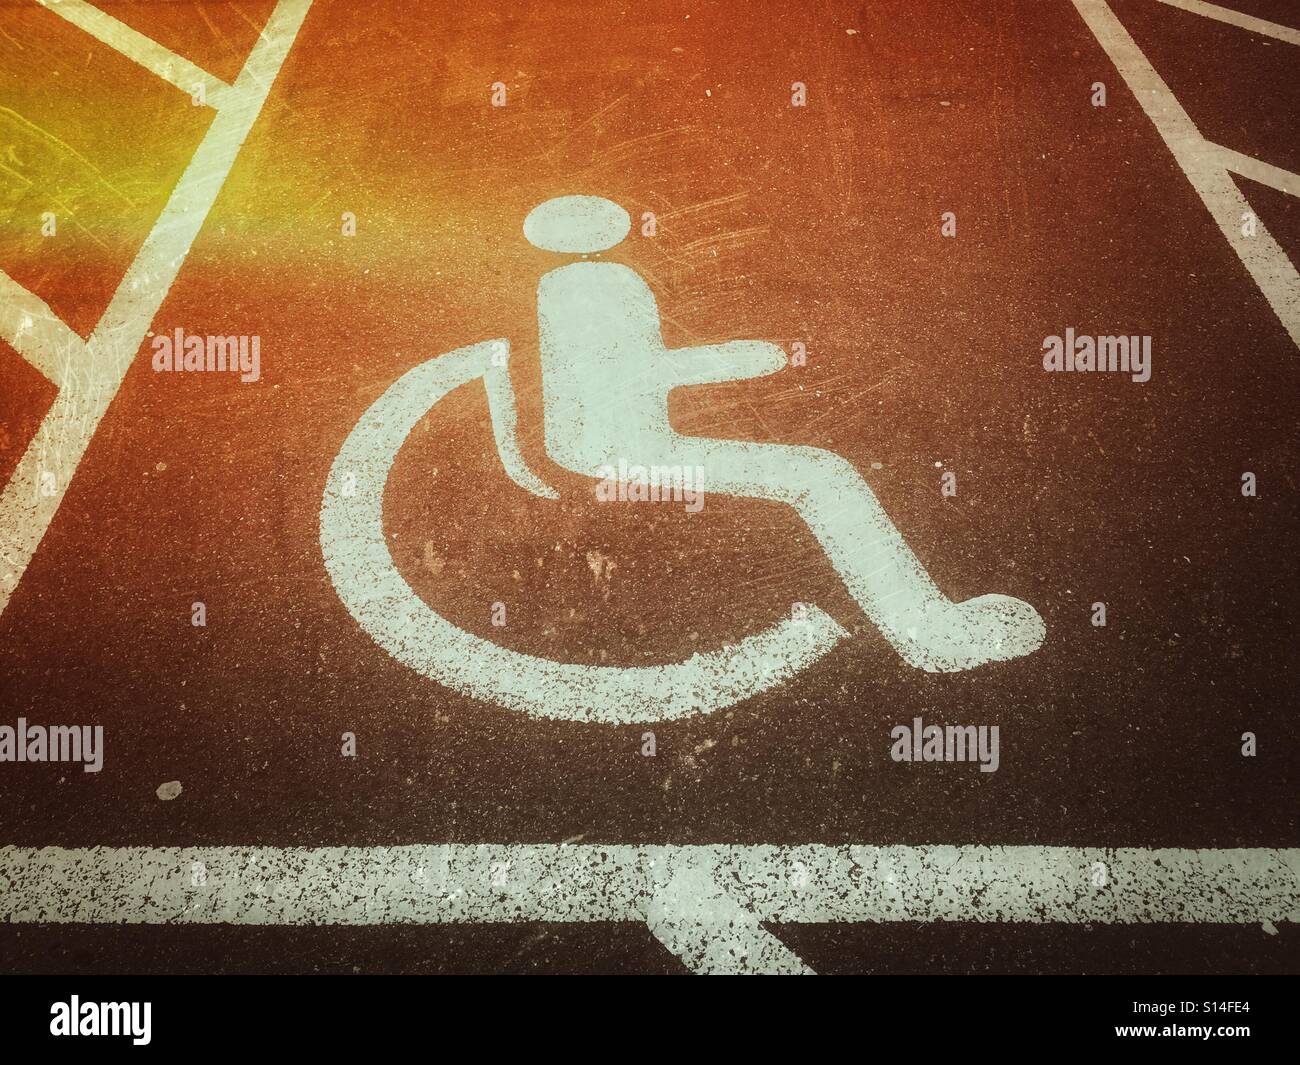 A light leak effect on photographic film of the parking space area a light leak effect on photographic film of the parking space area reserved for wheelchair users or those with a disability the symbol of a person sitting biocorpaavc